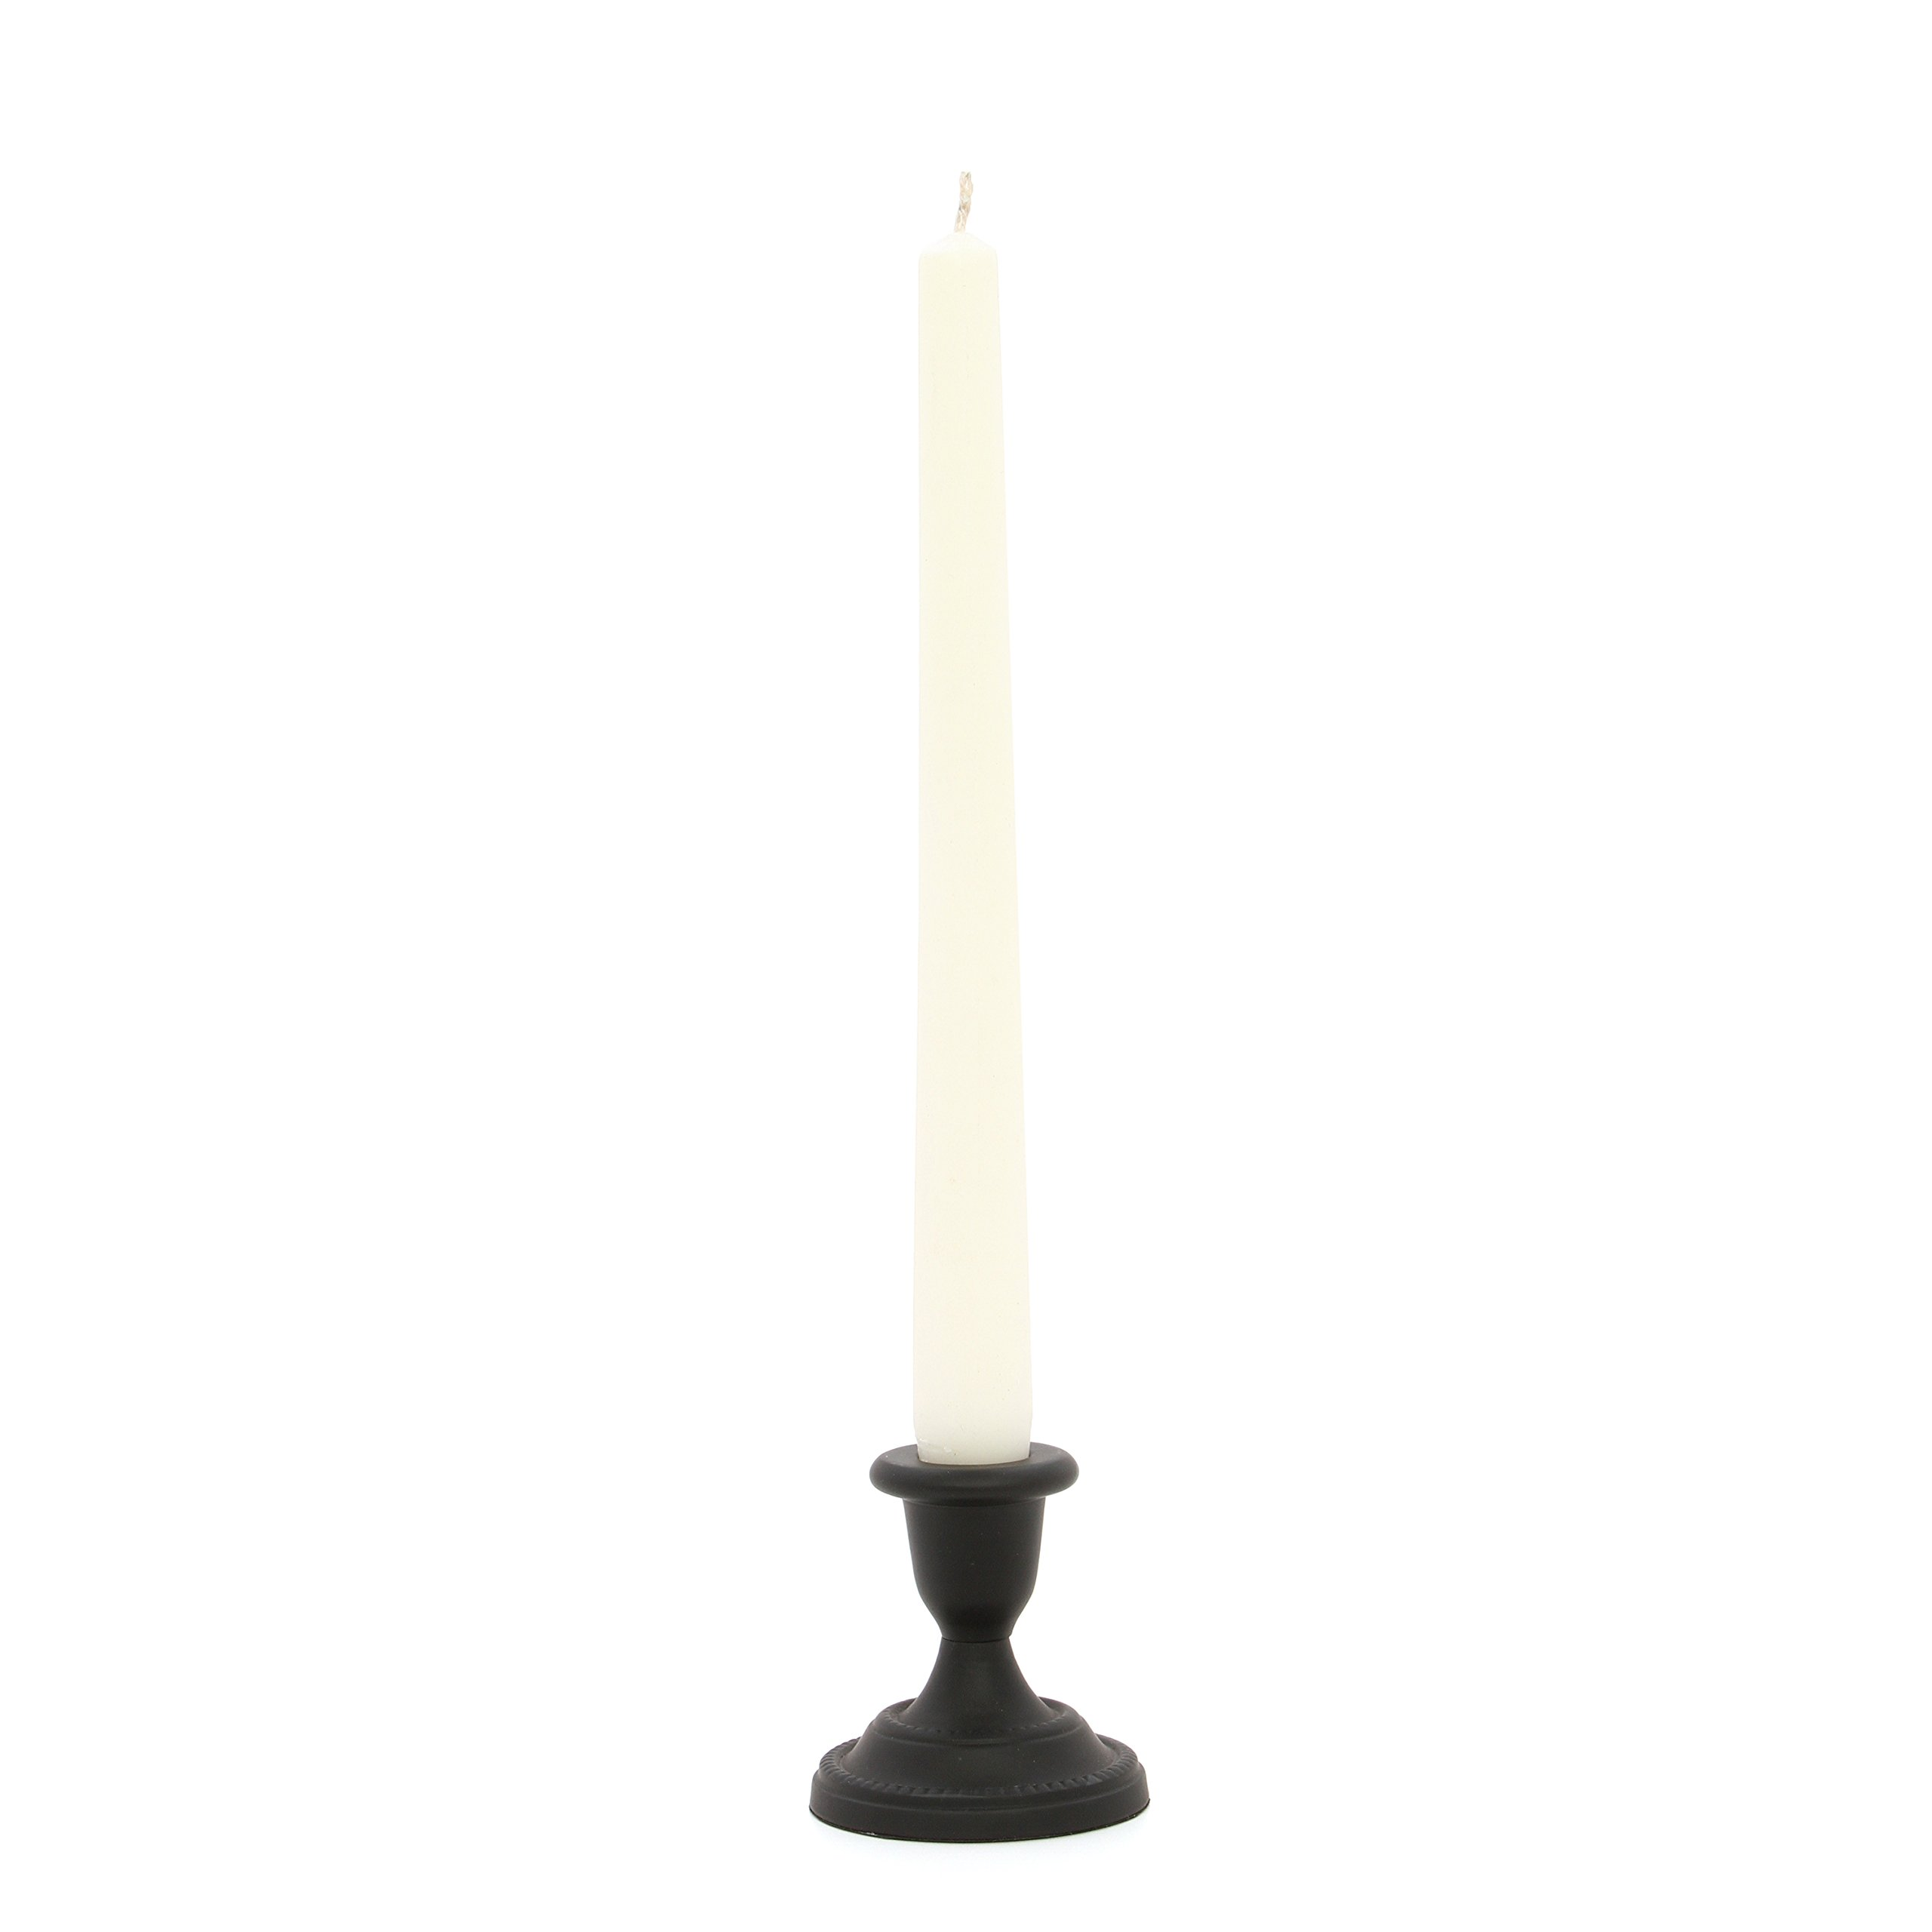 Hosley Black Taper Candle Holder, 2.75'' High, Set of 6. Ideal Gift for Wedding, Party, Special Occasion or as a Candle Holder. W1 by Hosley (Image #4)